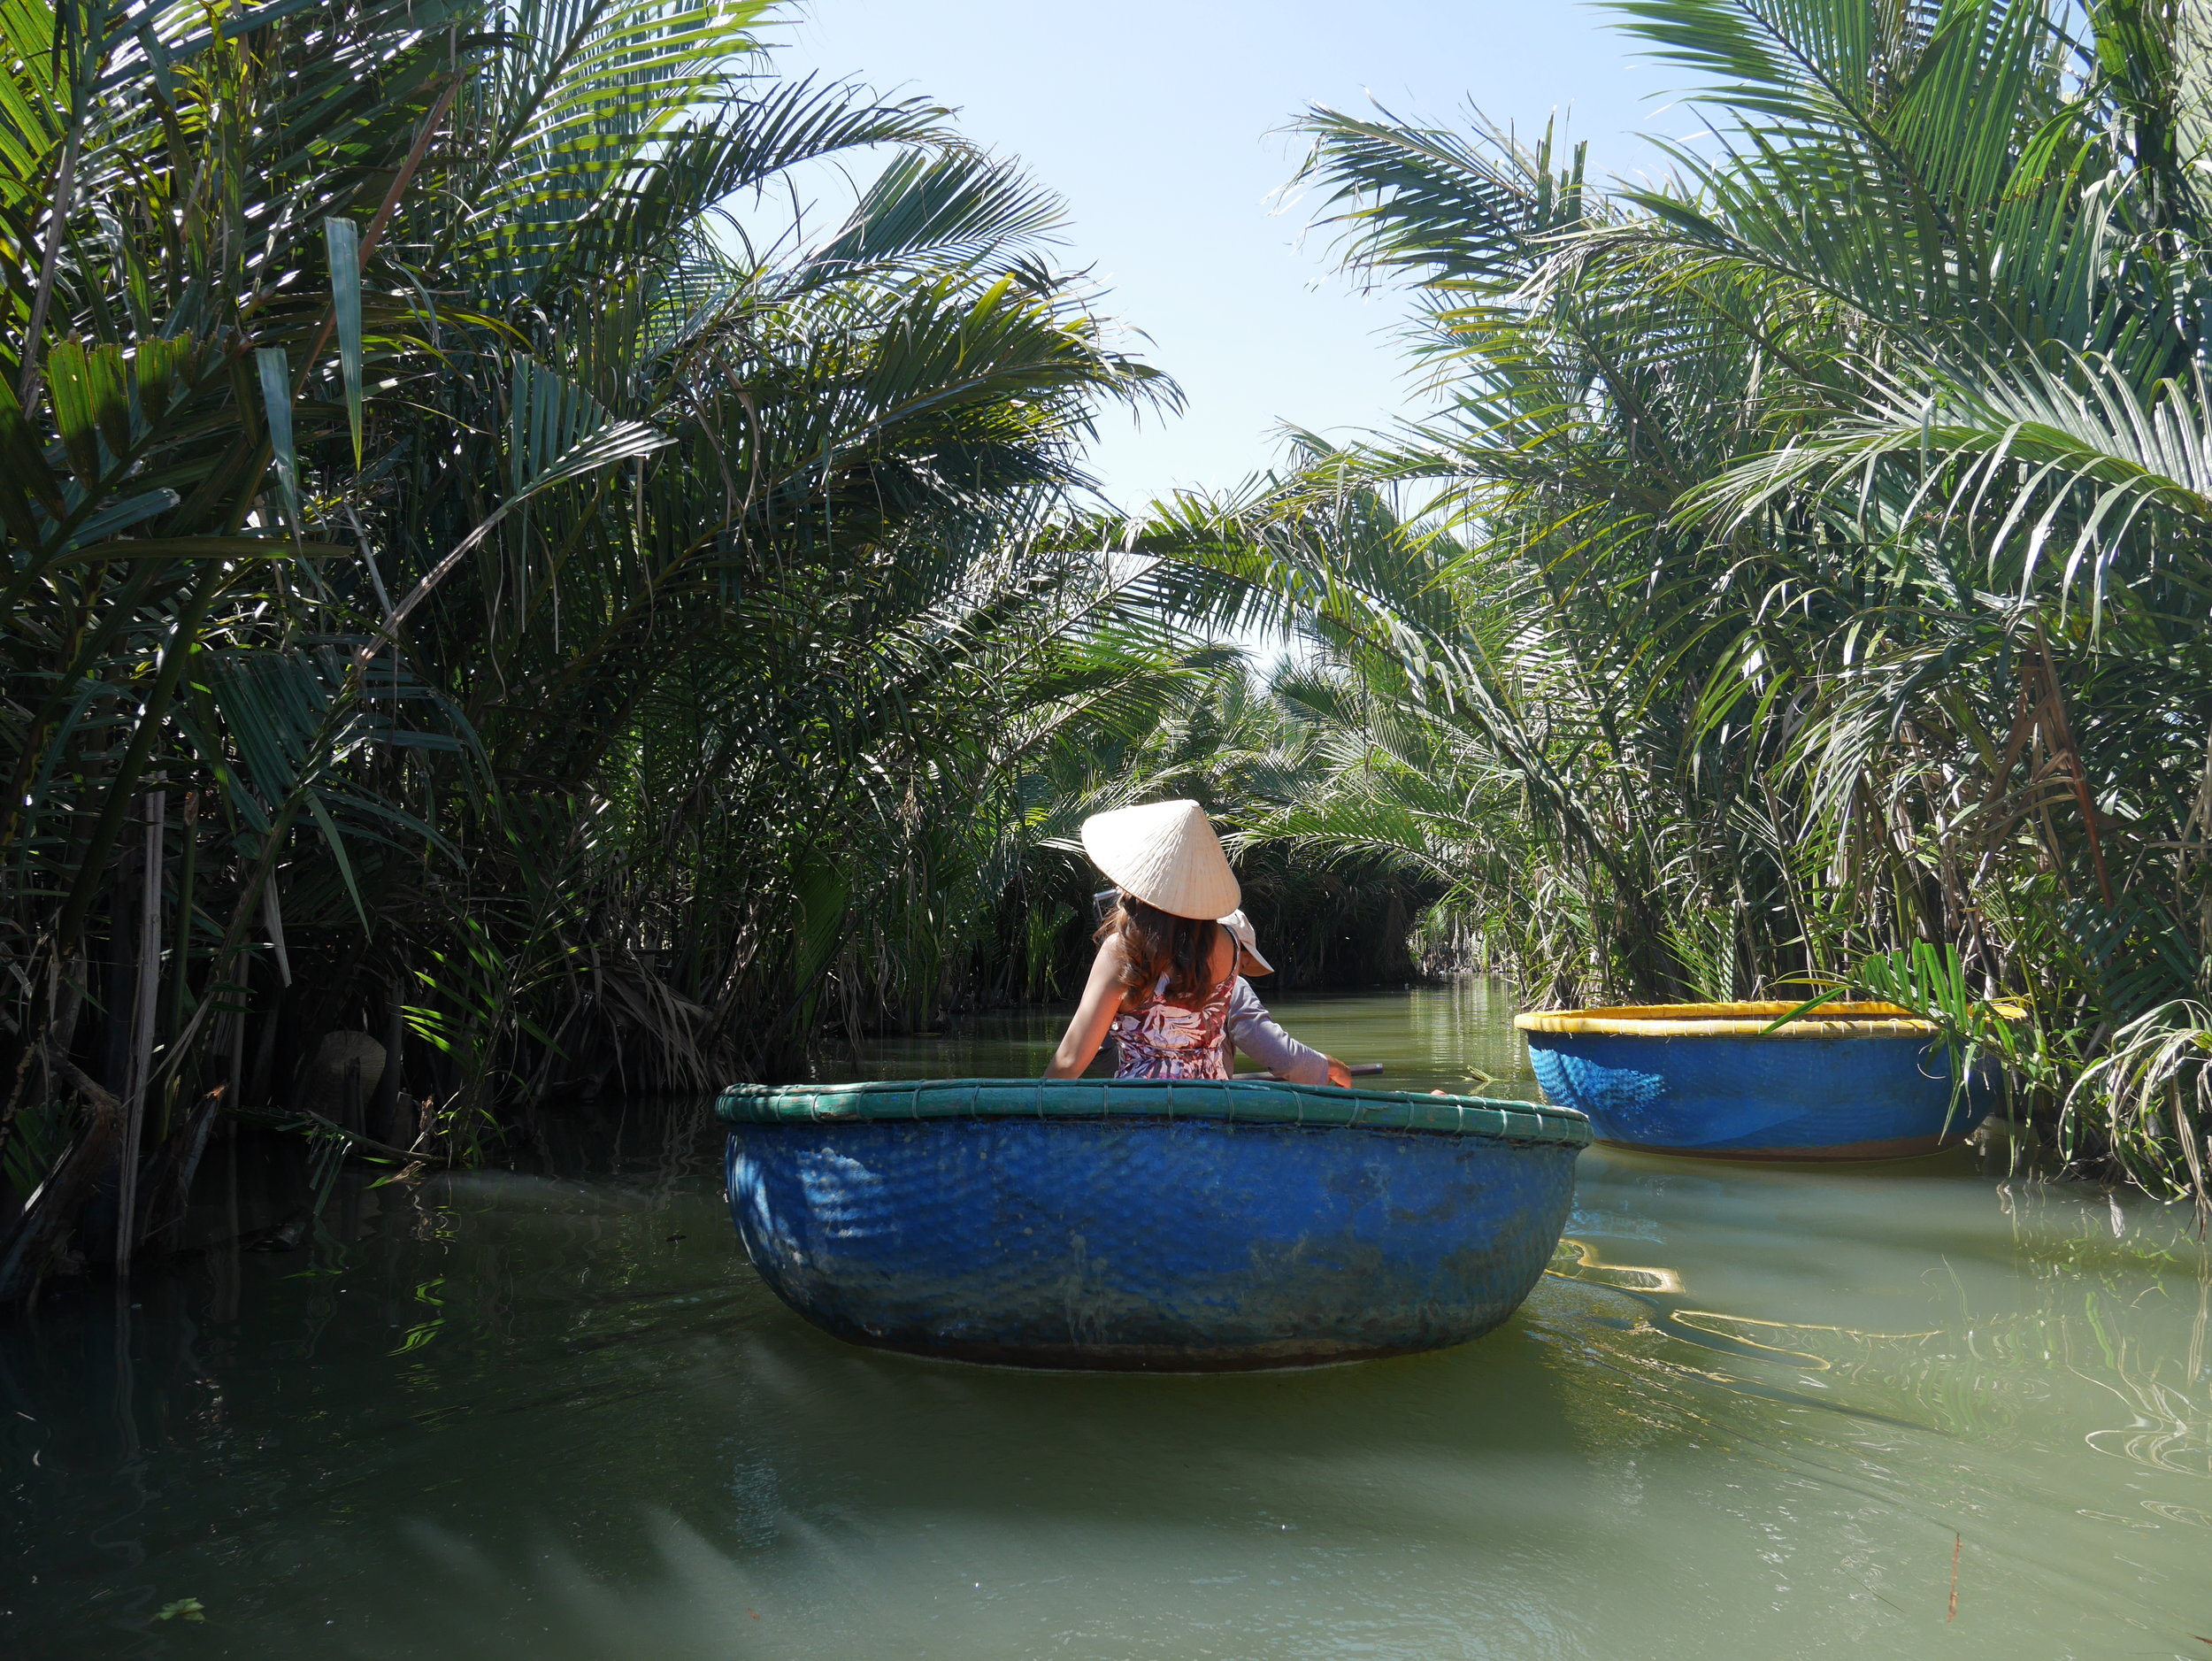 Hoi An Coconut Basket Boat on Thu Bon River, along with water coconut forest